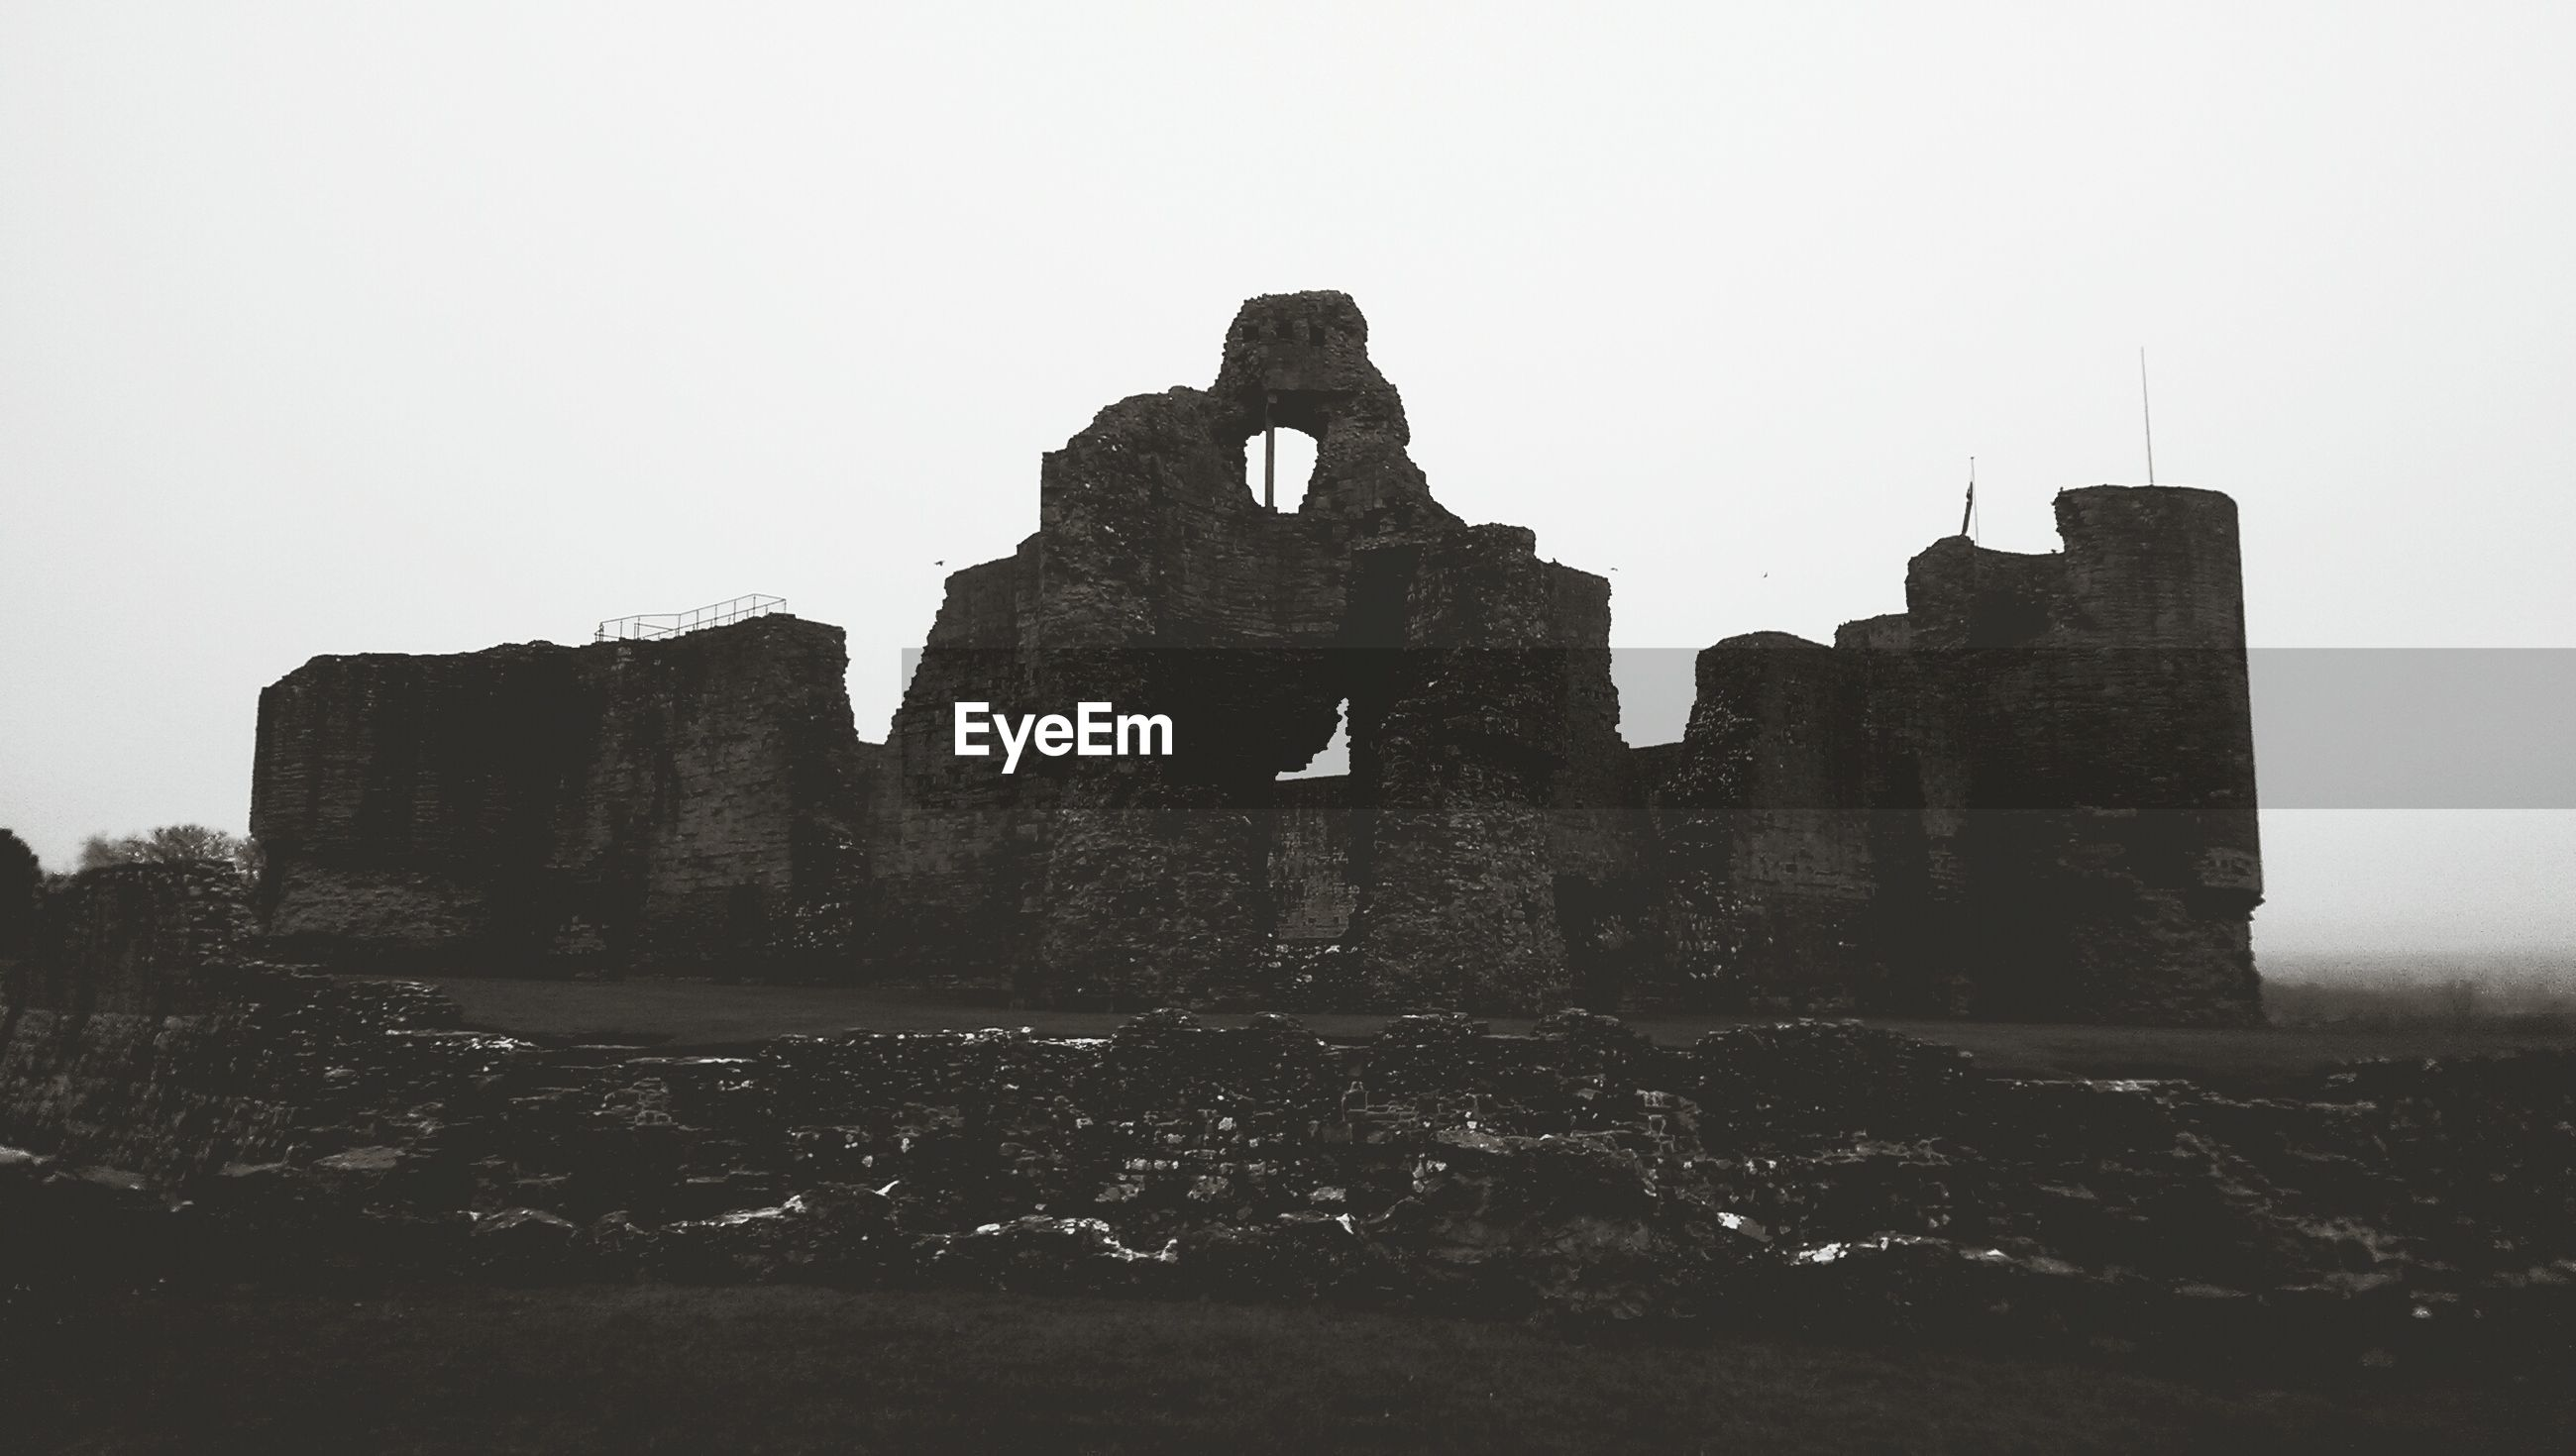 Exterior of rhuddlan castle against clear sky